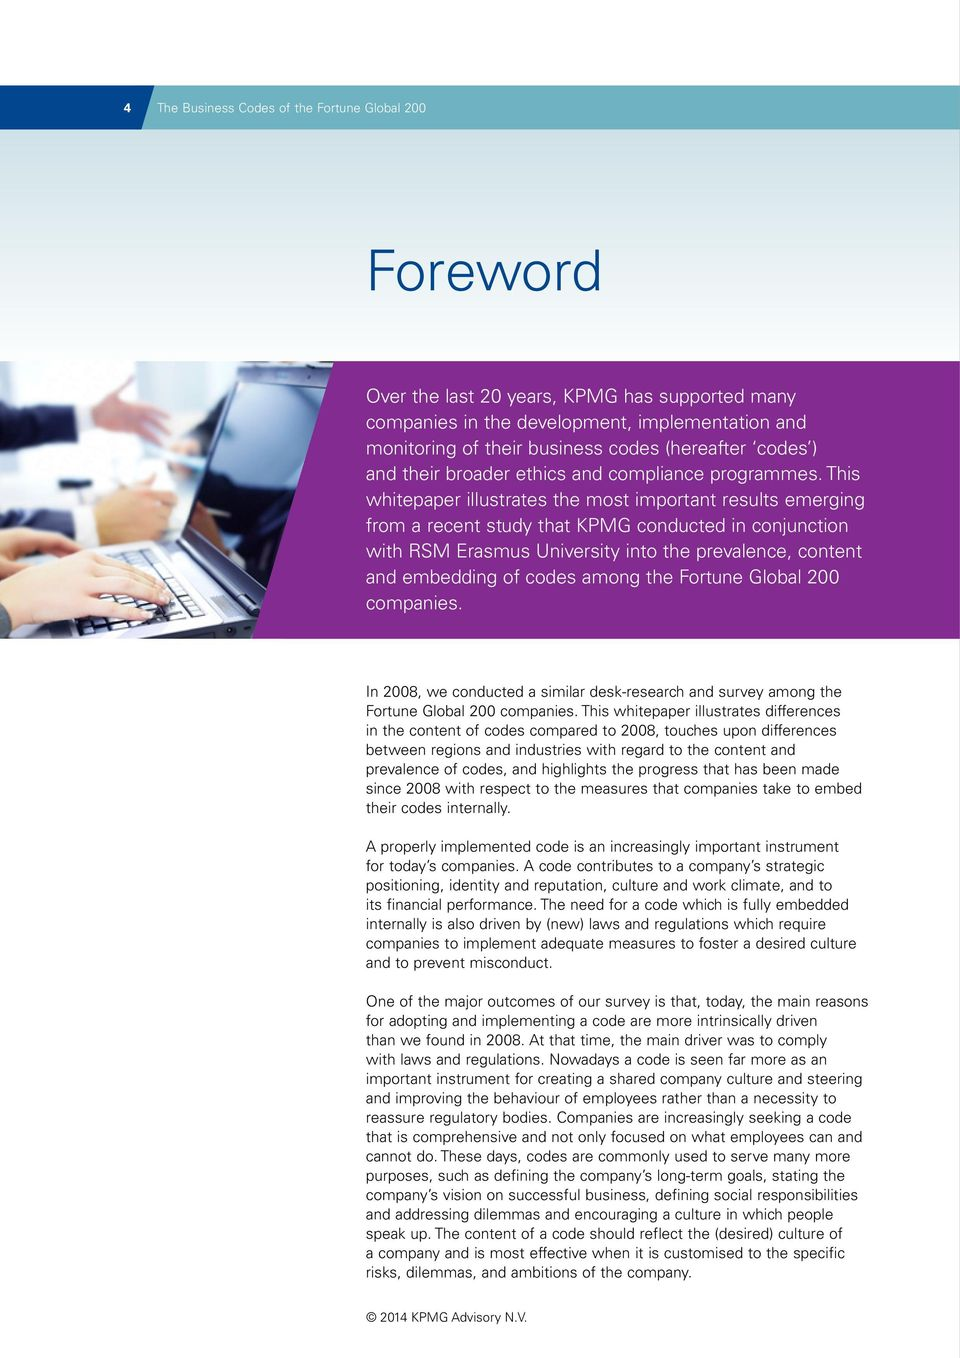 This whitepaper illustrates the most important results emerging from a recent study that KPMG conducted in conjunction with RSM Erasmus University into the prevalence, content and embedding of codes